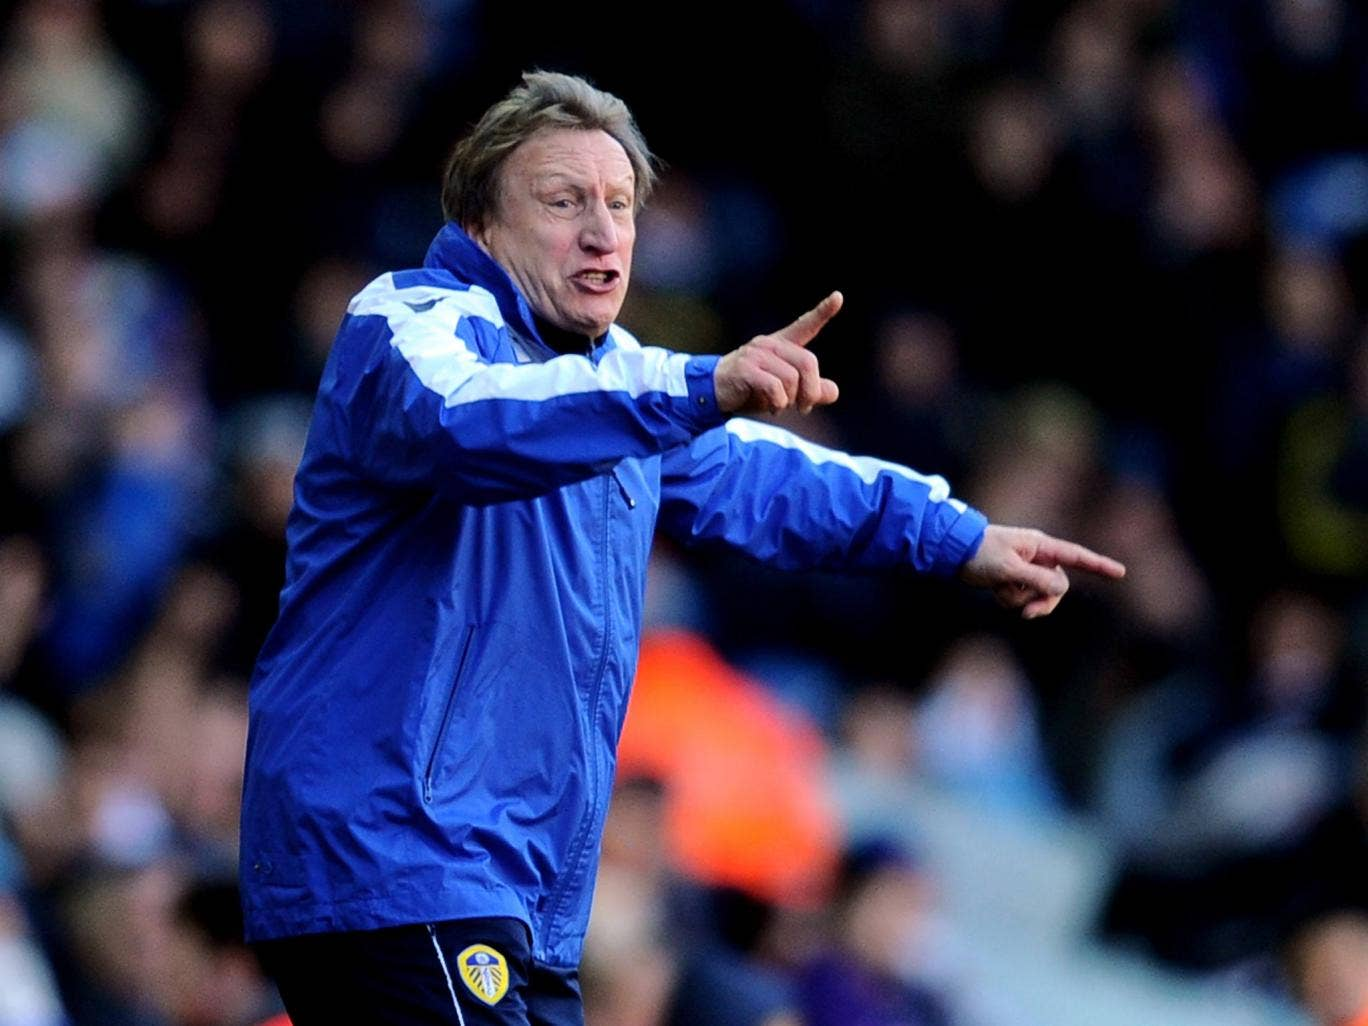 Neil Warnock makes a point on the touchline at Leeds